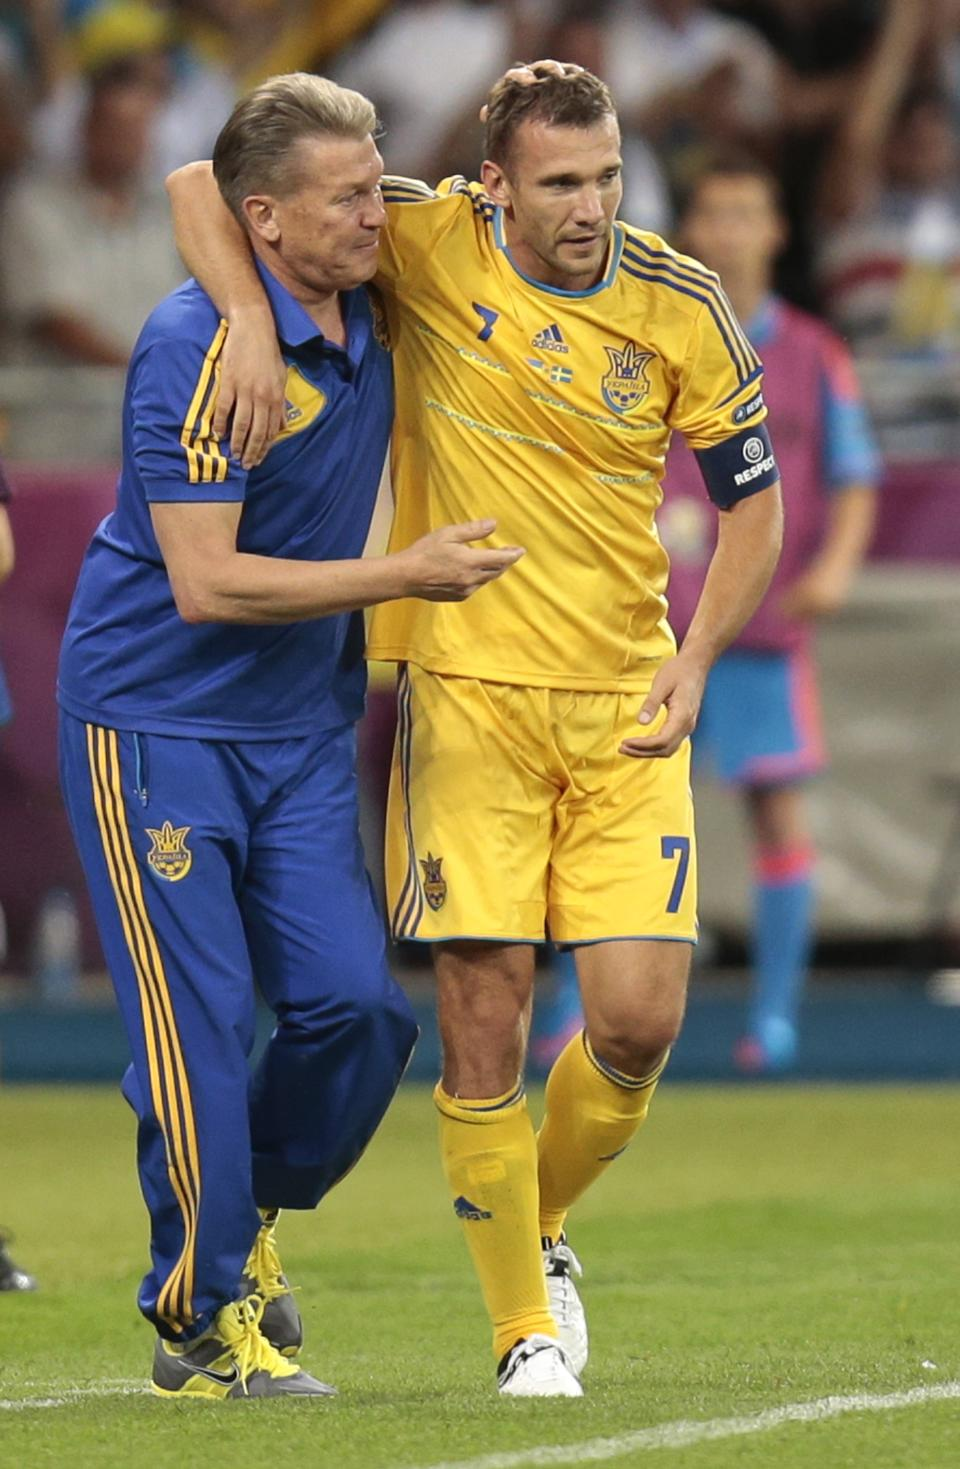 Ukraine's Andriy Shevchenko, right,  celebrates with Ukraine head coach Oleg Blokhin after scoring his second goal during the Euro 2012 soccer championship Group D match between Ukraine and Sweden in Kiev, Ukraine, Monday, June 11, 2012. (AP Photo/Ivan Sekretarev)